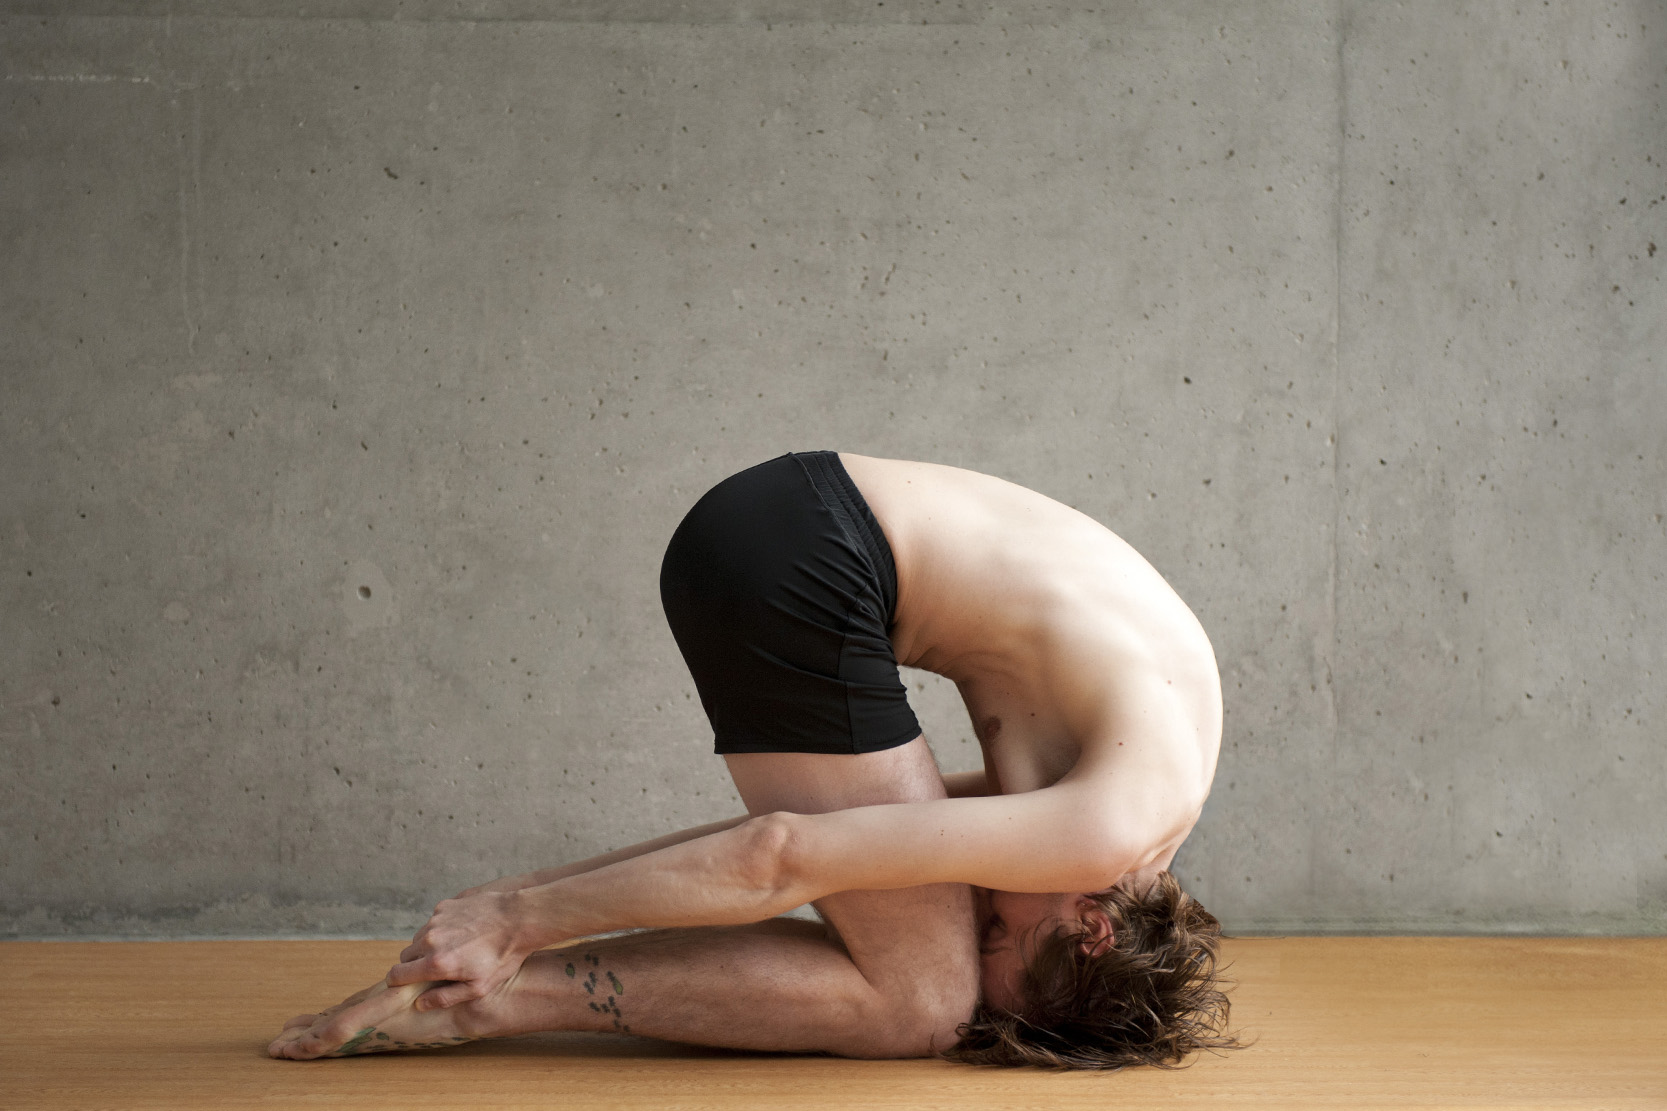 Man with tattoos Doing Rabbit Pose